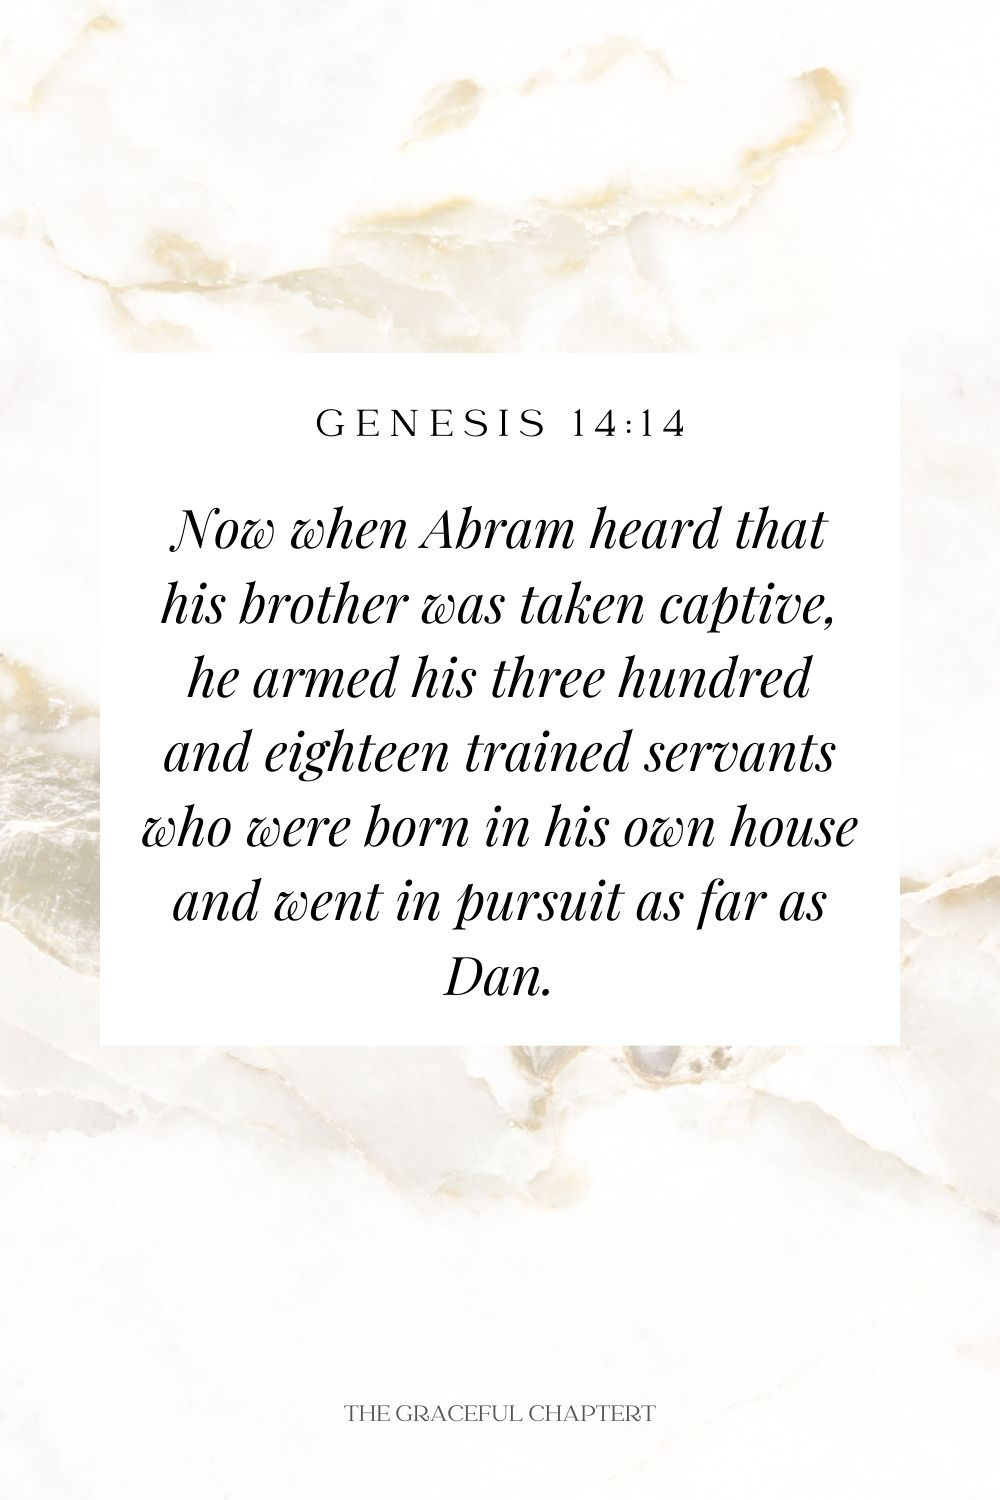 Now when Abram heard that his brother was taken captive, he armed his three hundred and eighteen trained servants who were born in his own house and went in pursuit as far as Dan. Genesis 14:14